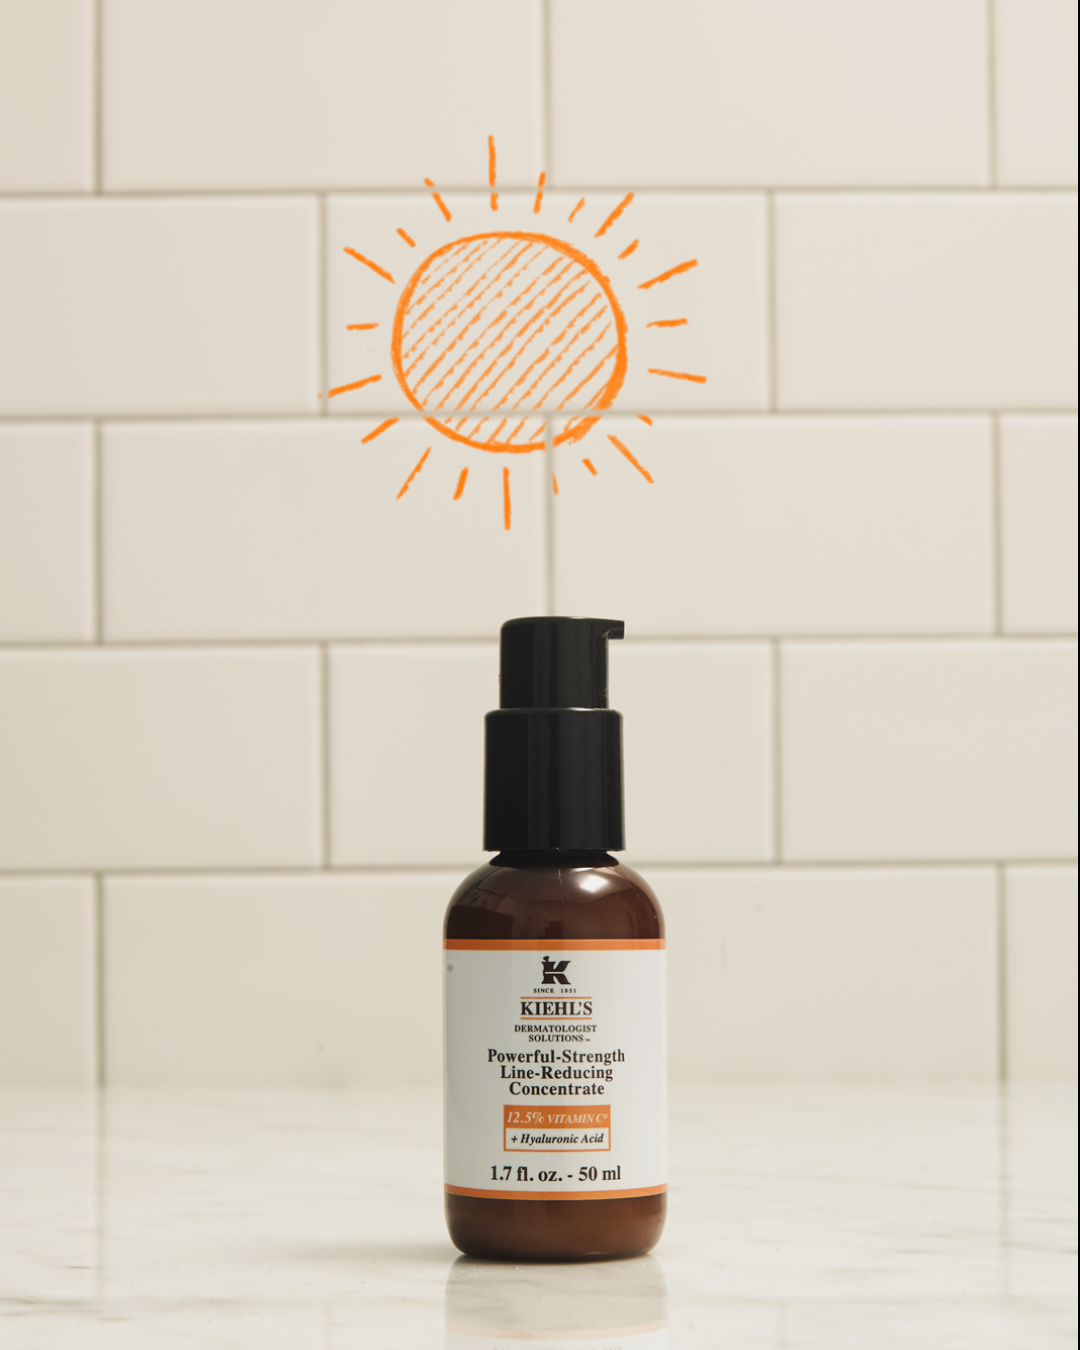 One skincare product for day and night is Kiehl's Powerful-Strength Line-Reducing Concentrate. This facial serum packed with 12.5% Vitamin C and Hyaluronic Acid helps promote healthy skin around the clock.